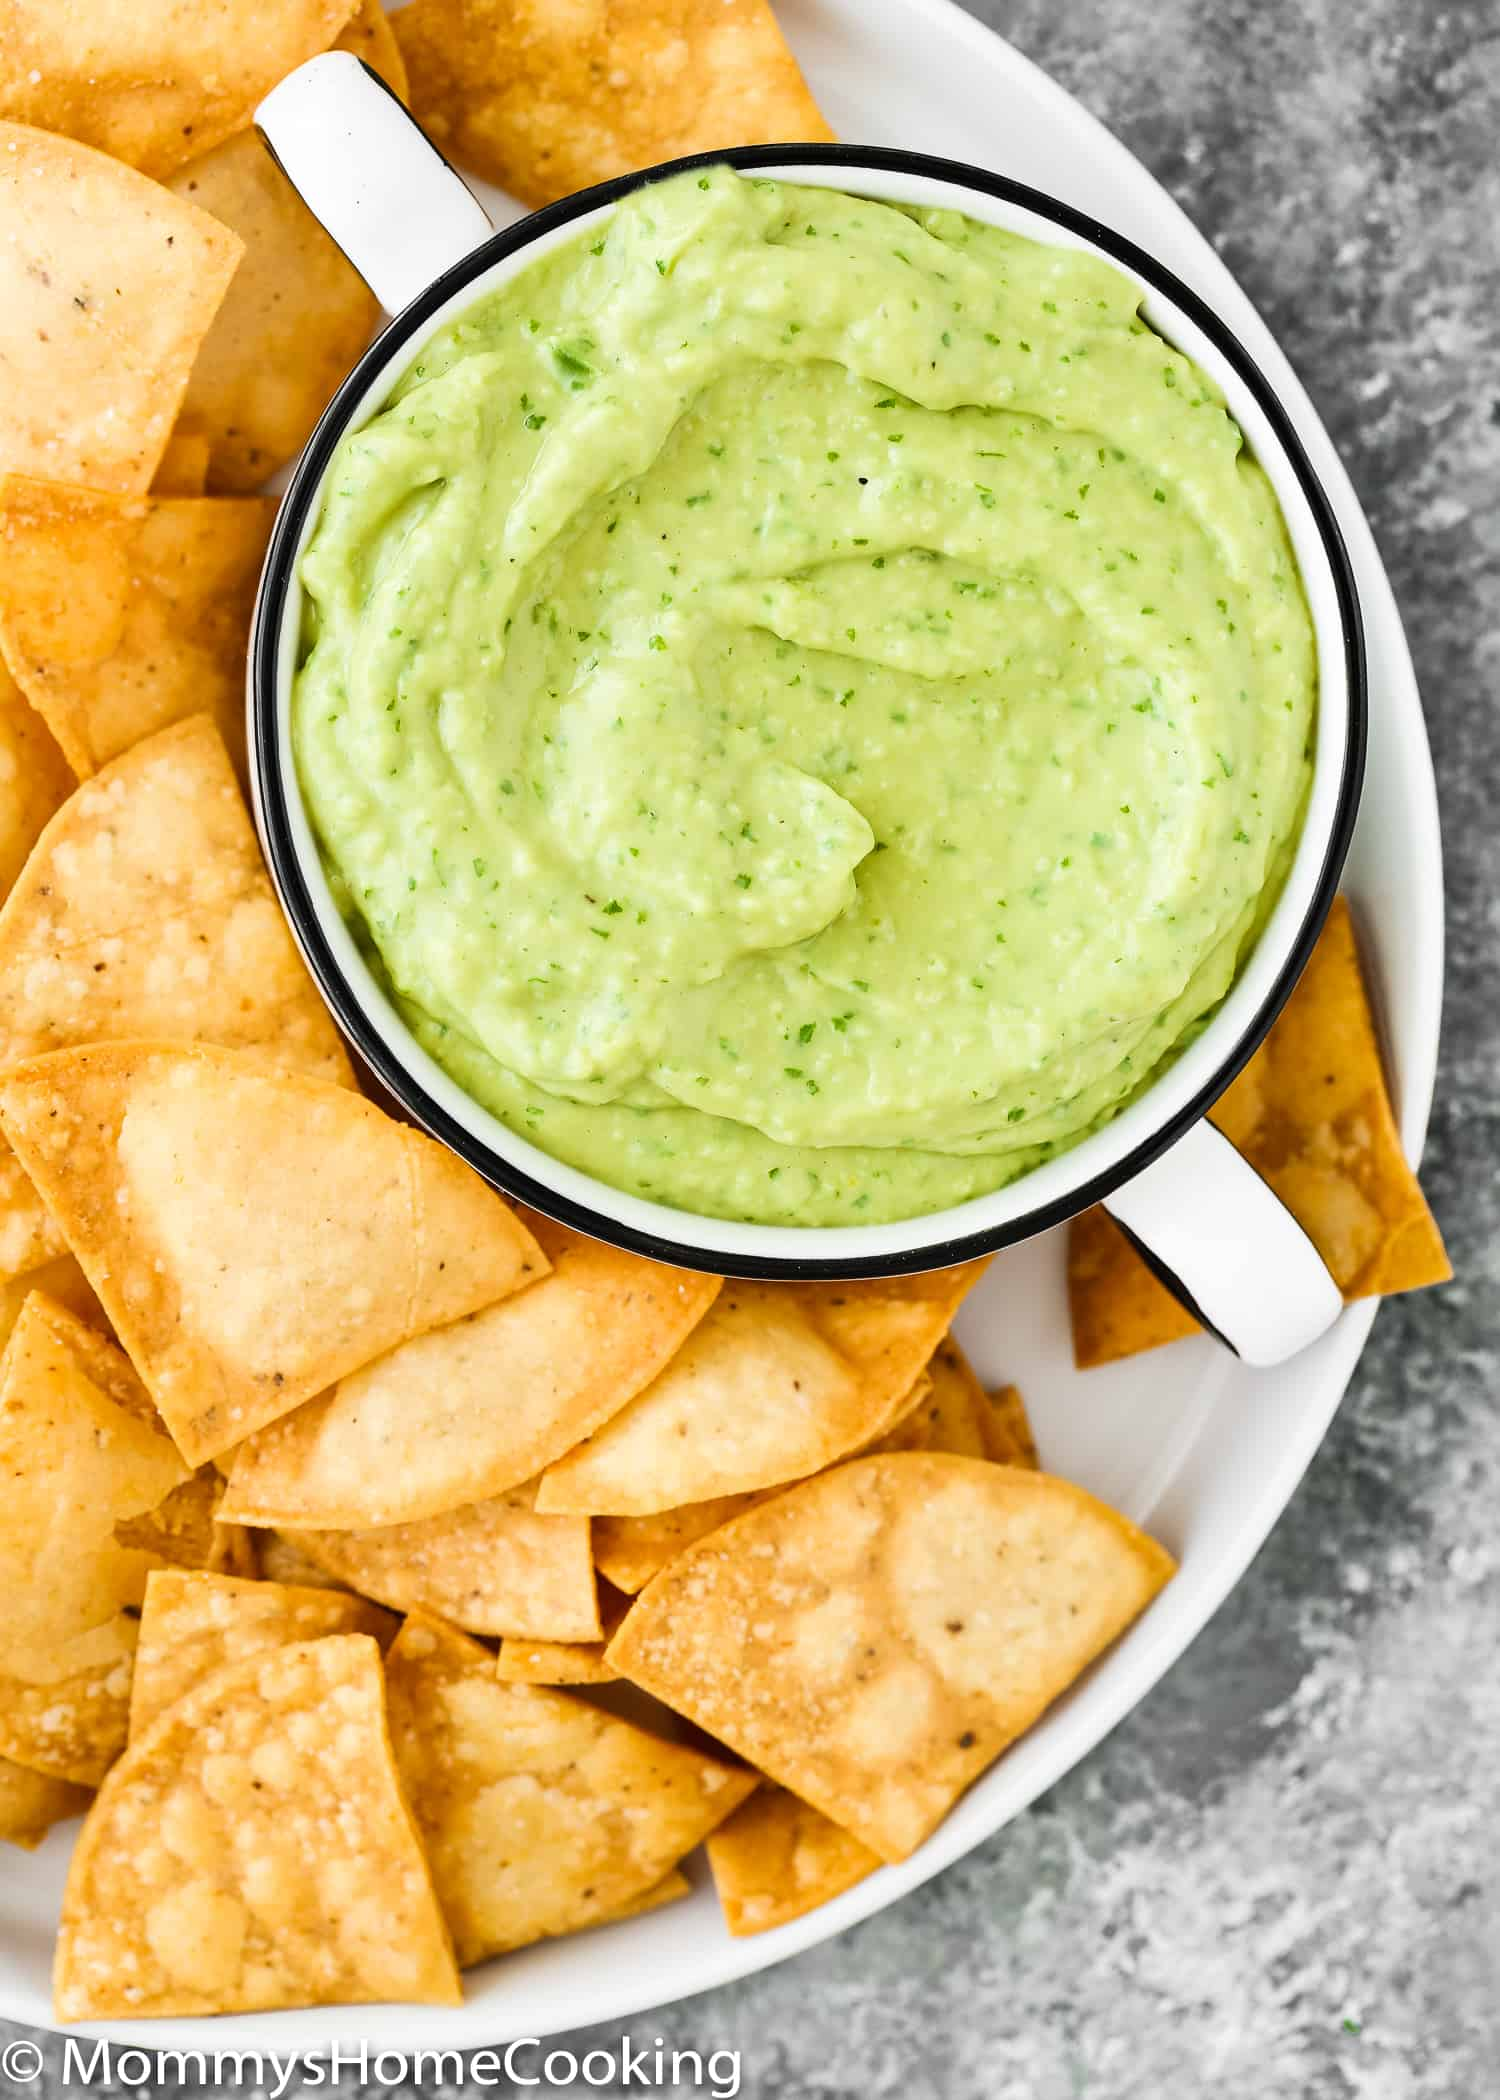 avocado sauce close-up in a plate with chips.